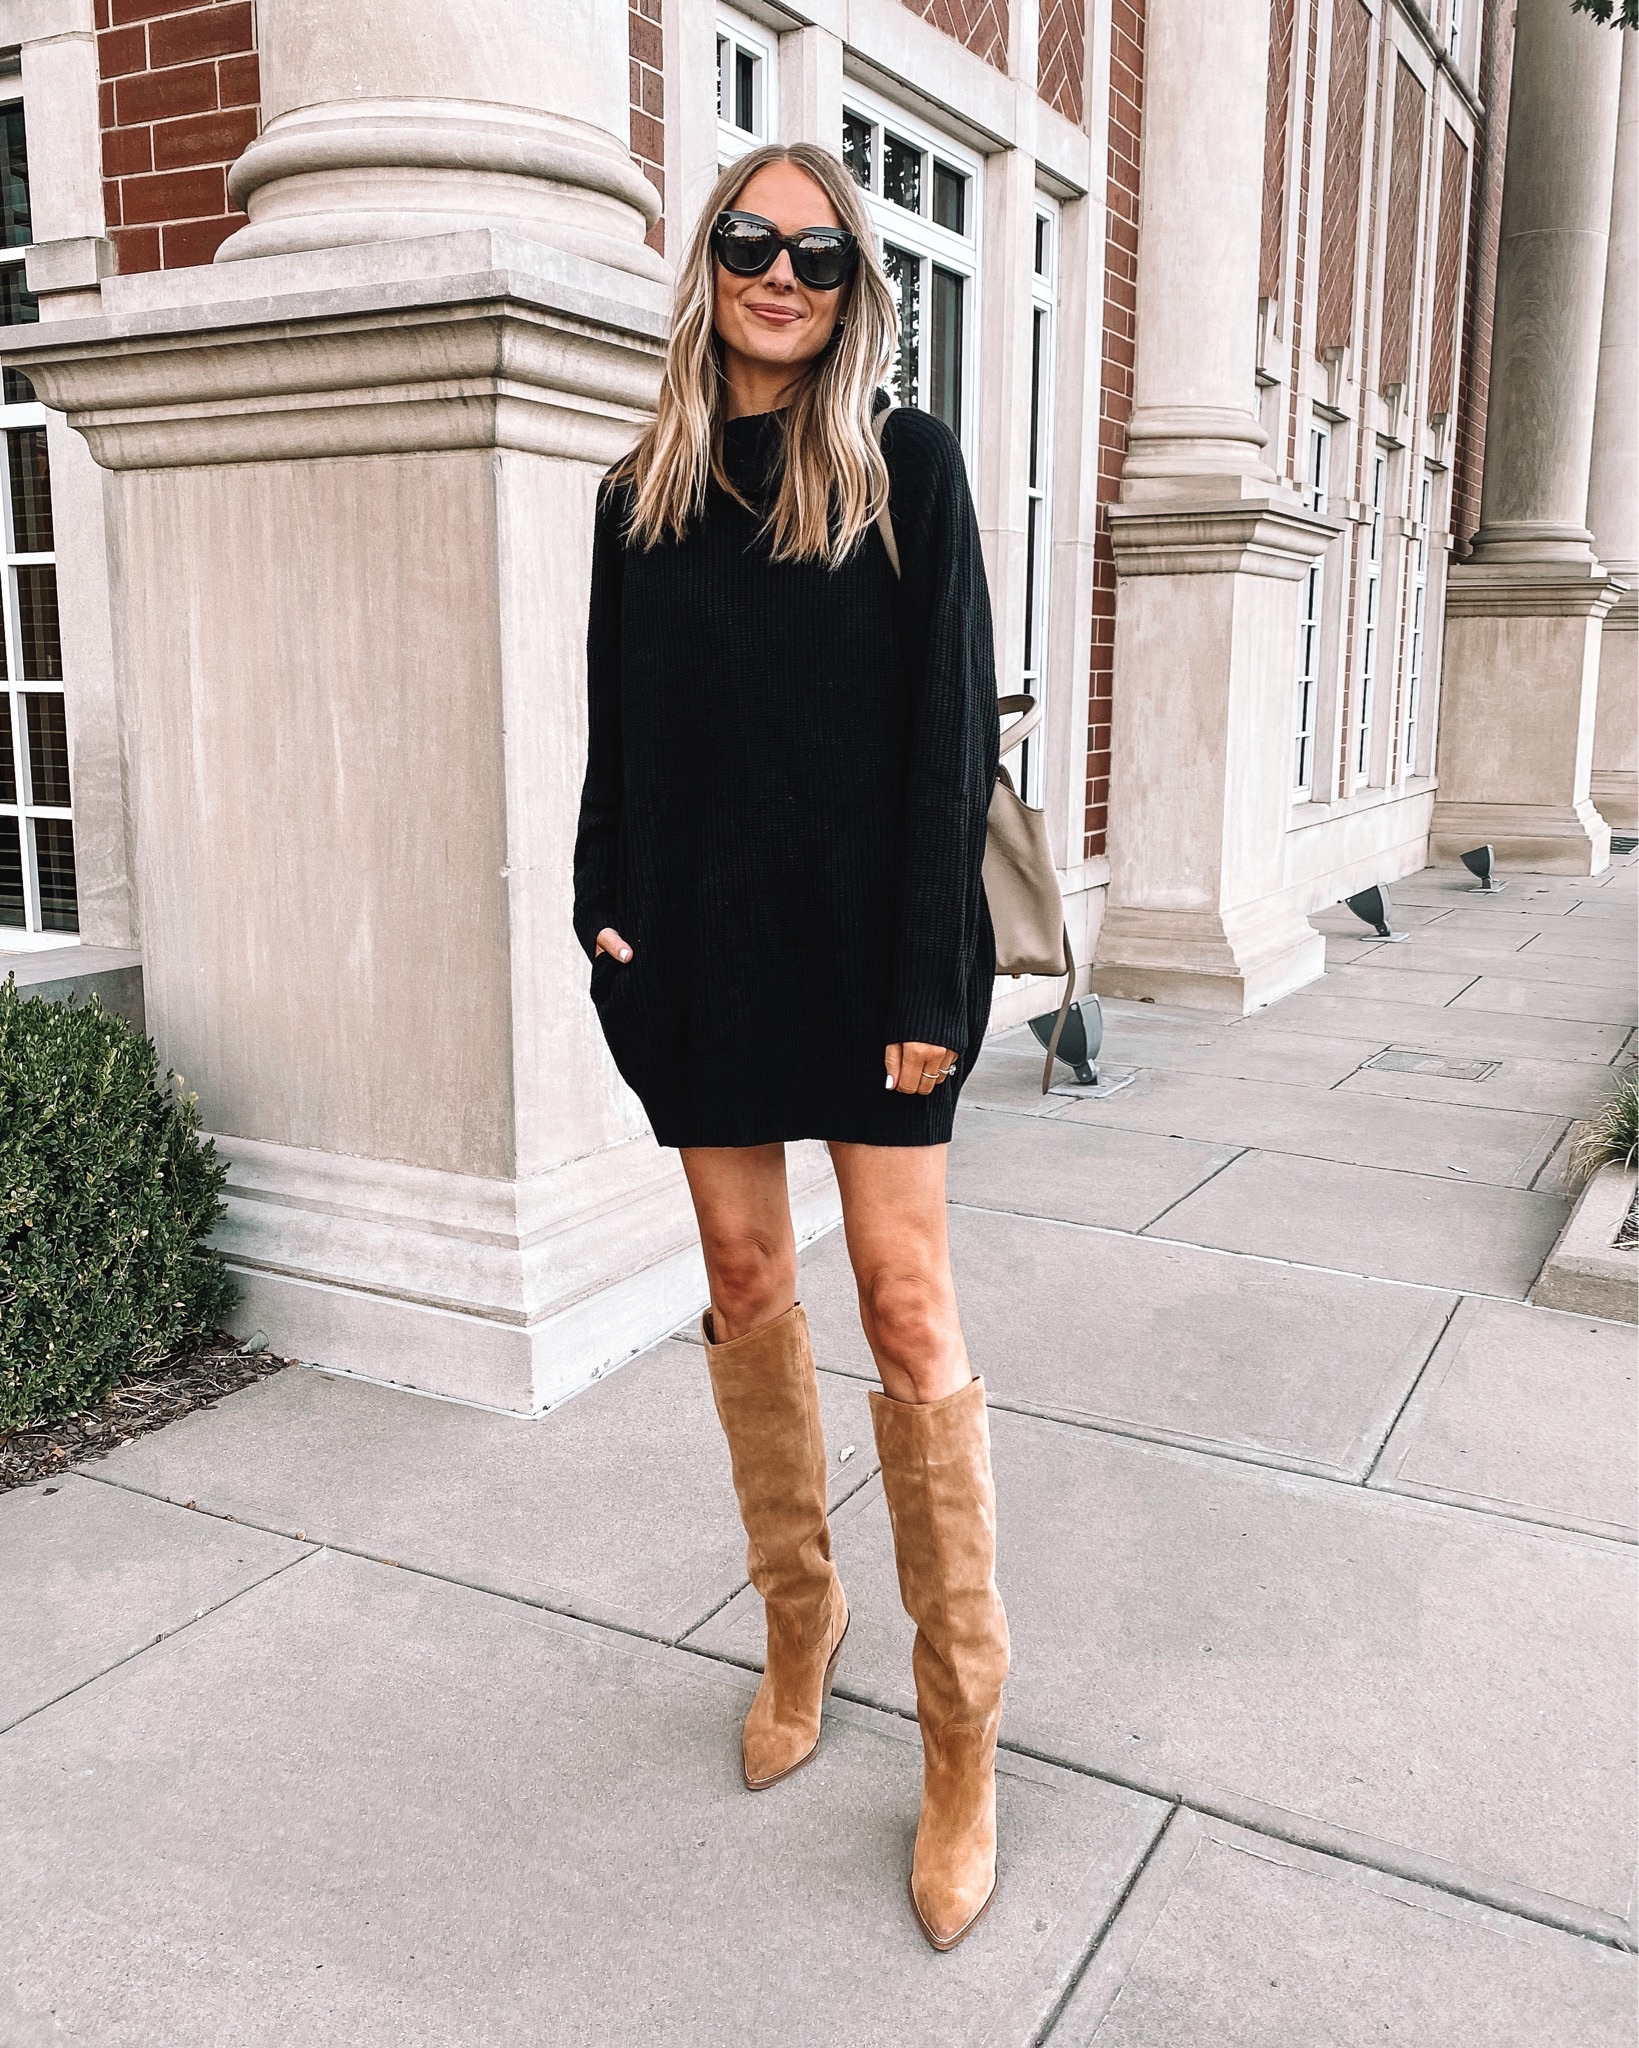 Fashion Jackson Wearing Amazon Fashion Black Sweater Dress Tan Knee High Boots Fall Outfit